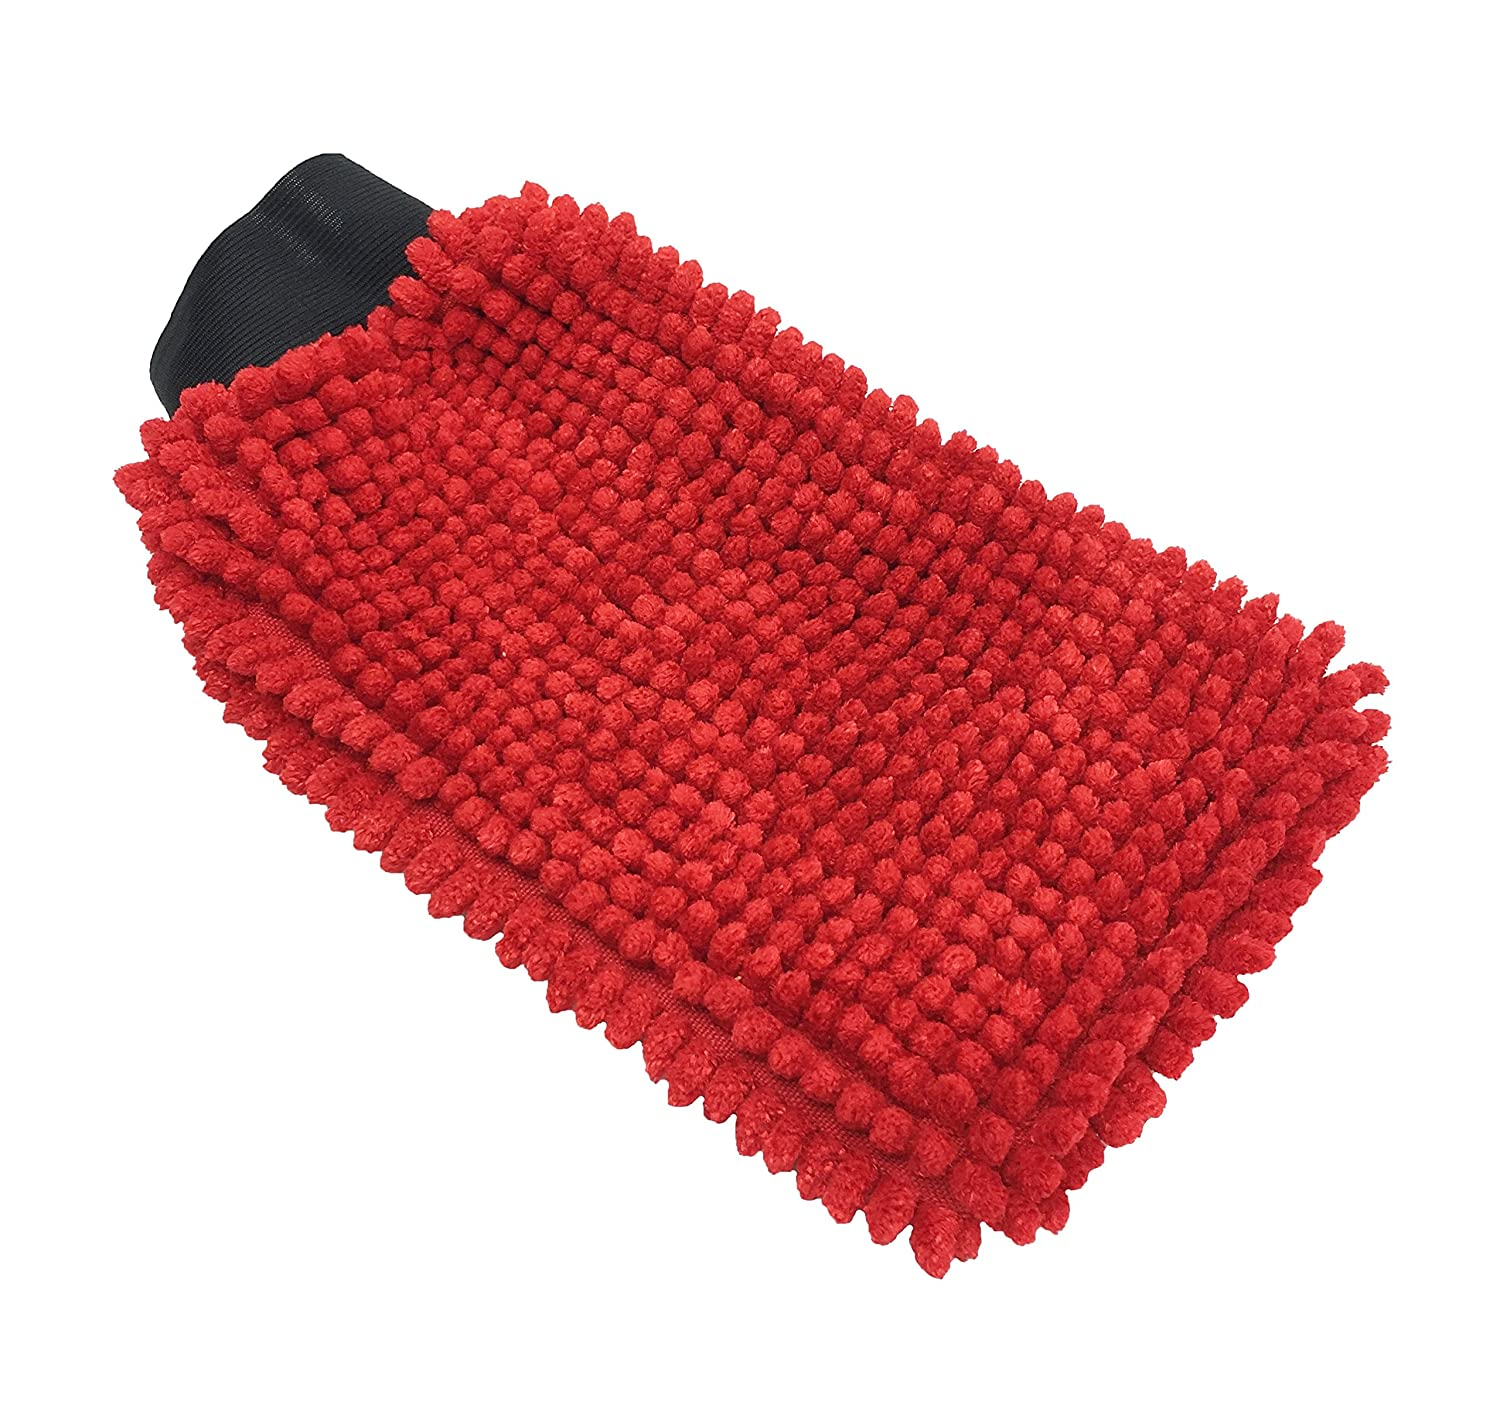 Viking (942200) 2in1 Microfiber Knobby Wash Mitt